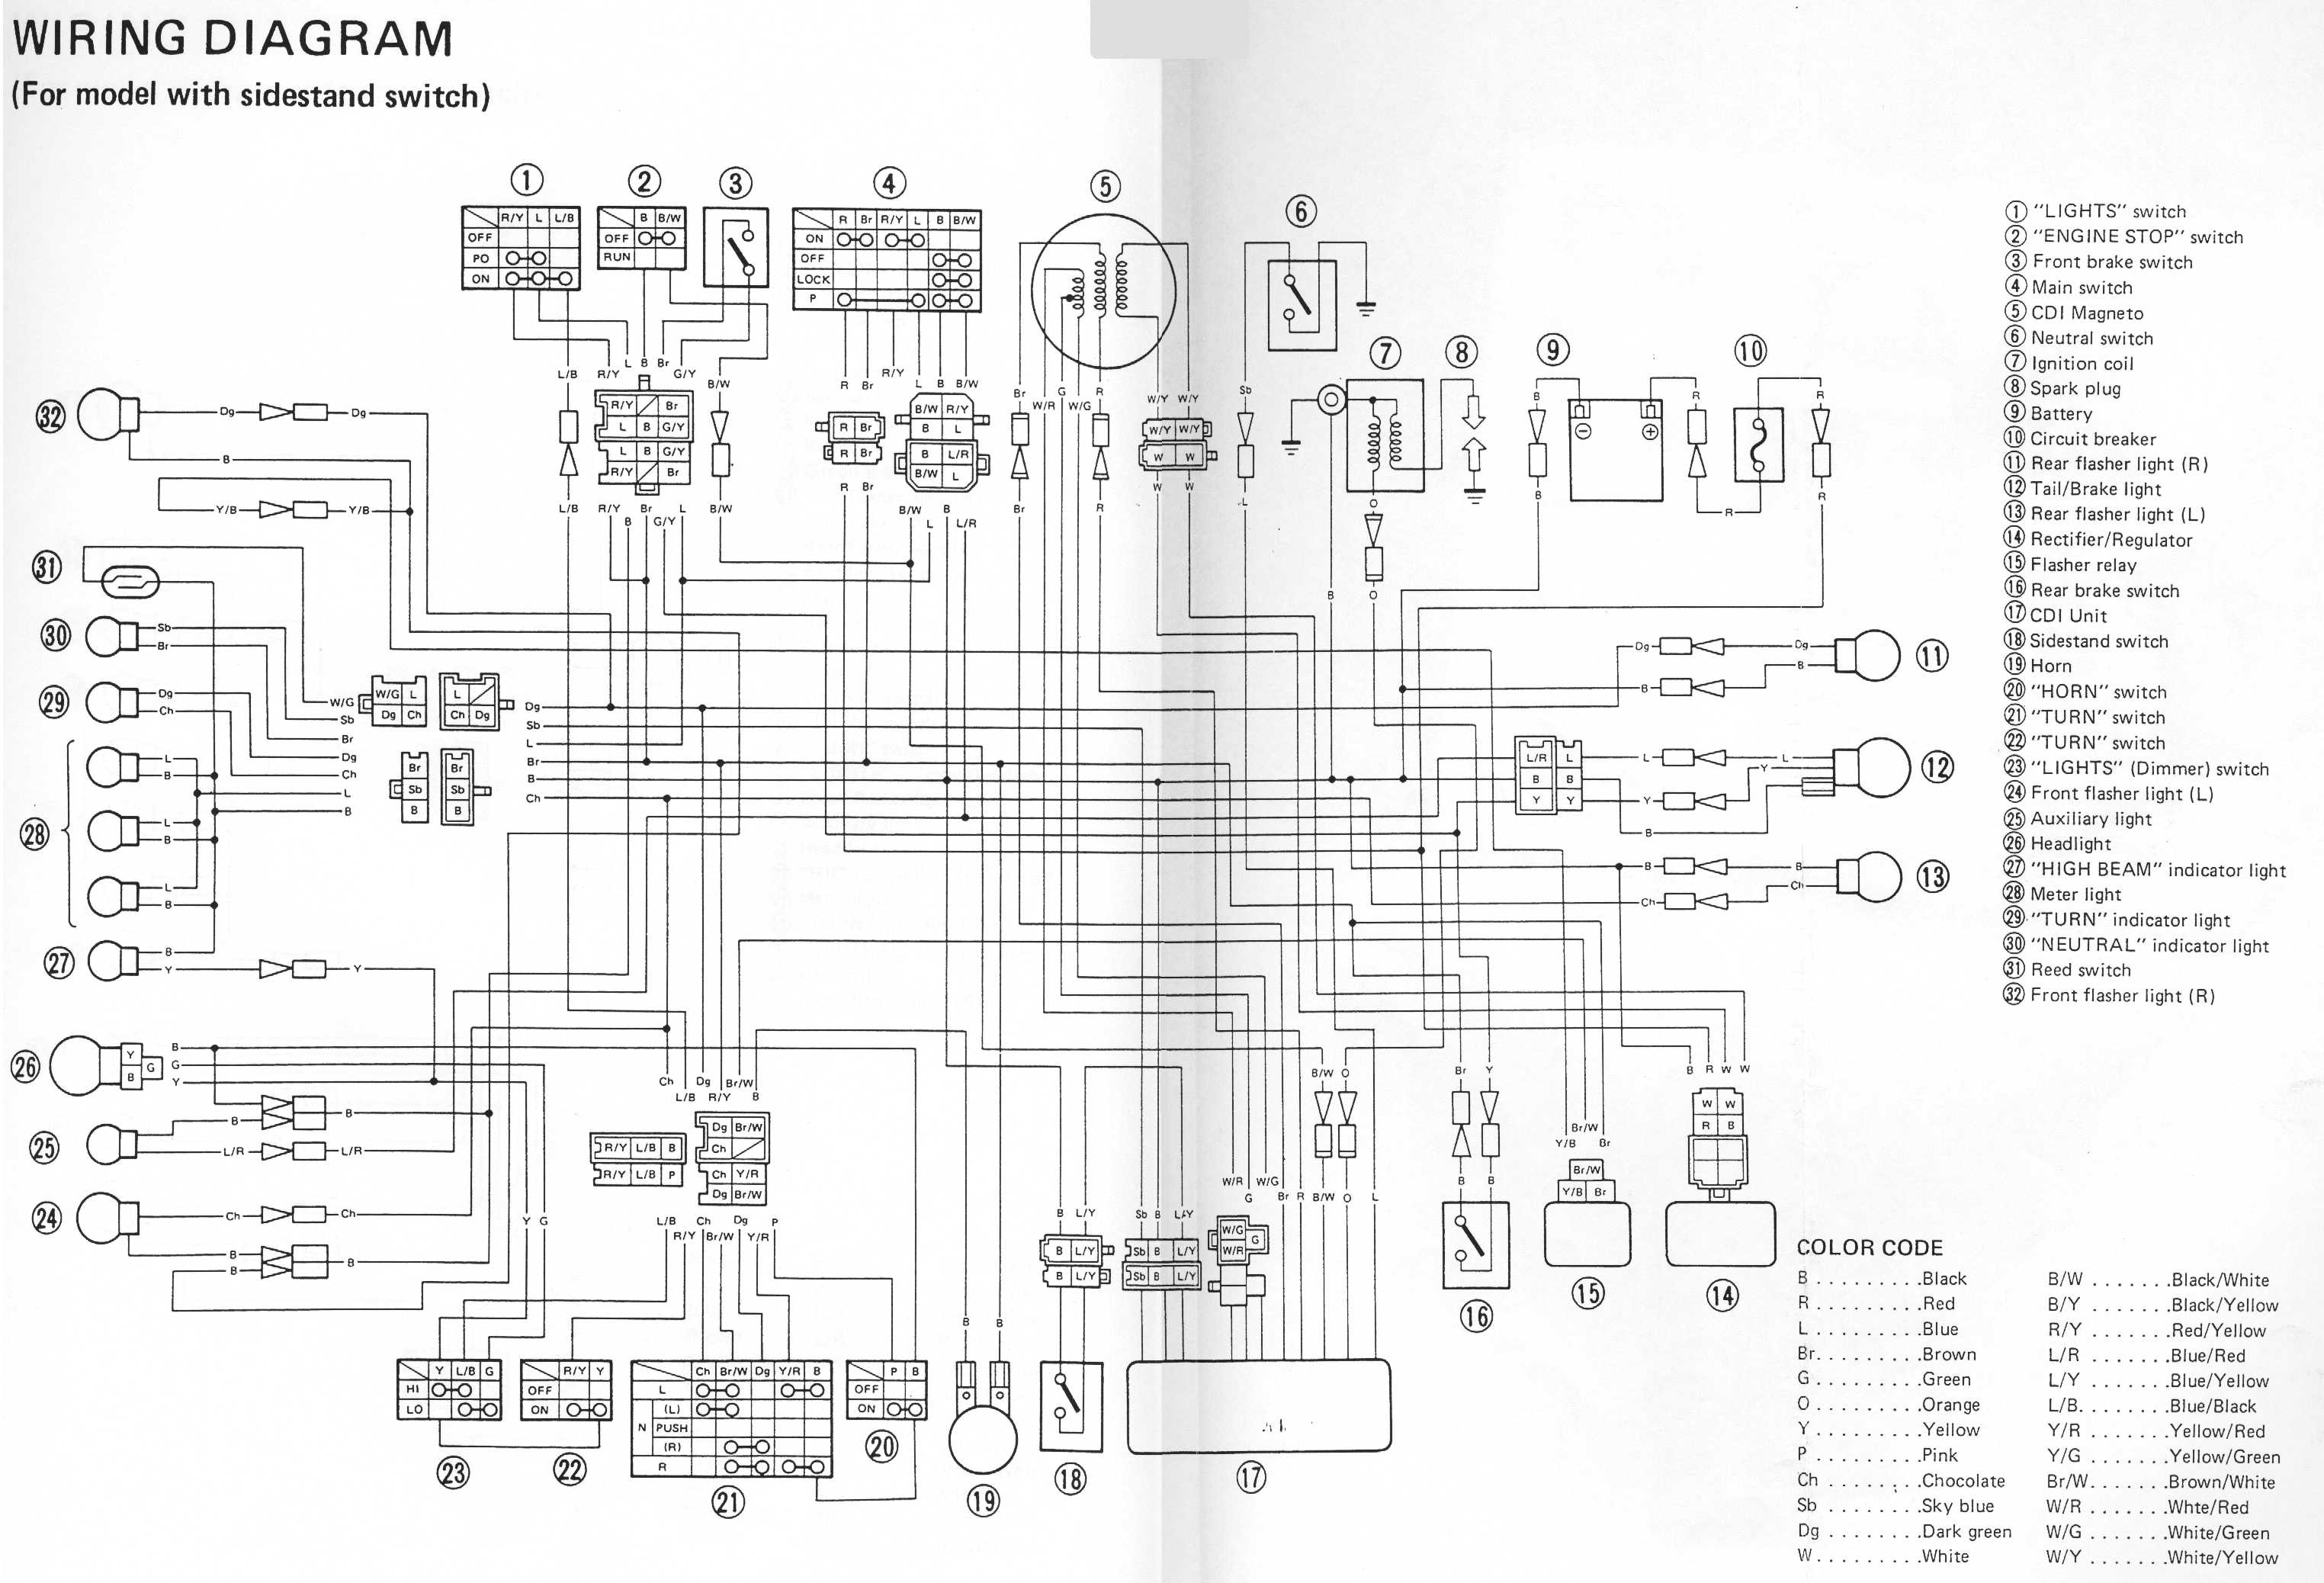 yamaha xs1100 ignition switch wiring diagram yamaha srx600 rectifier/regulator upgrade question ... #9